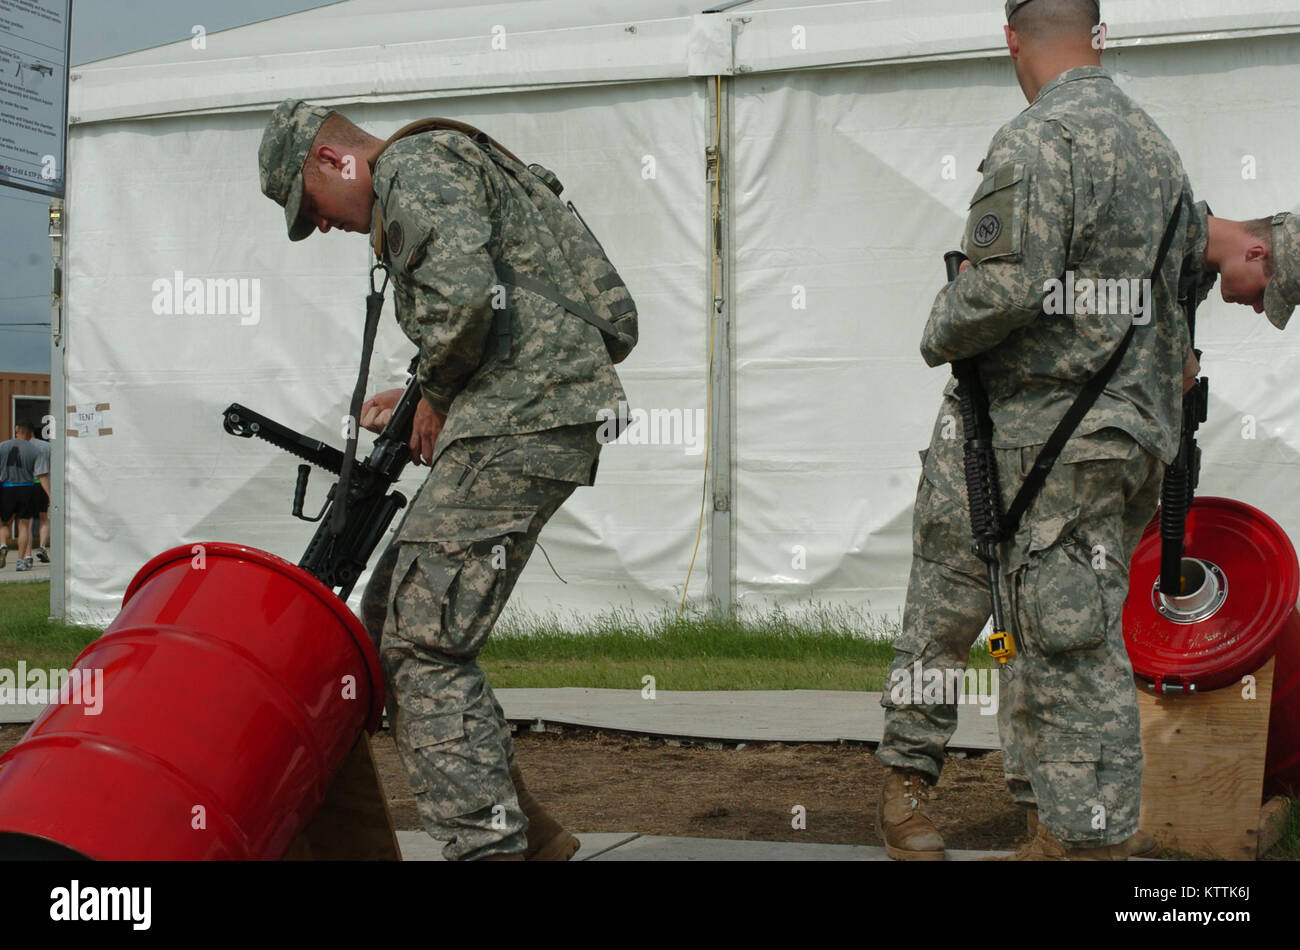 110526-A-4276-360Soldiers of the 27th Infantry Brigade Combat Team clear their weapons before entering the mess - Stock Image